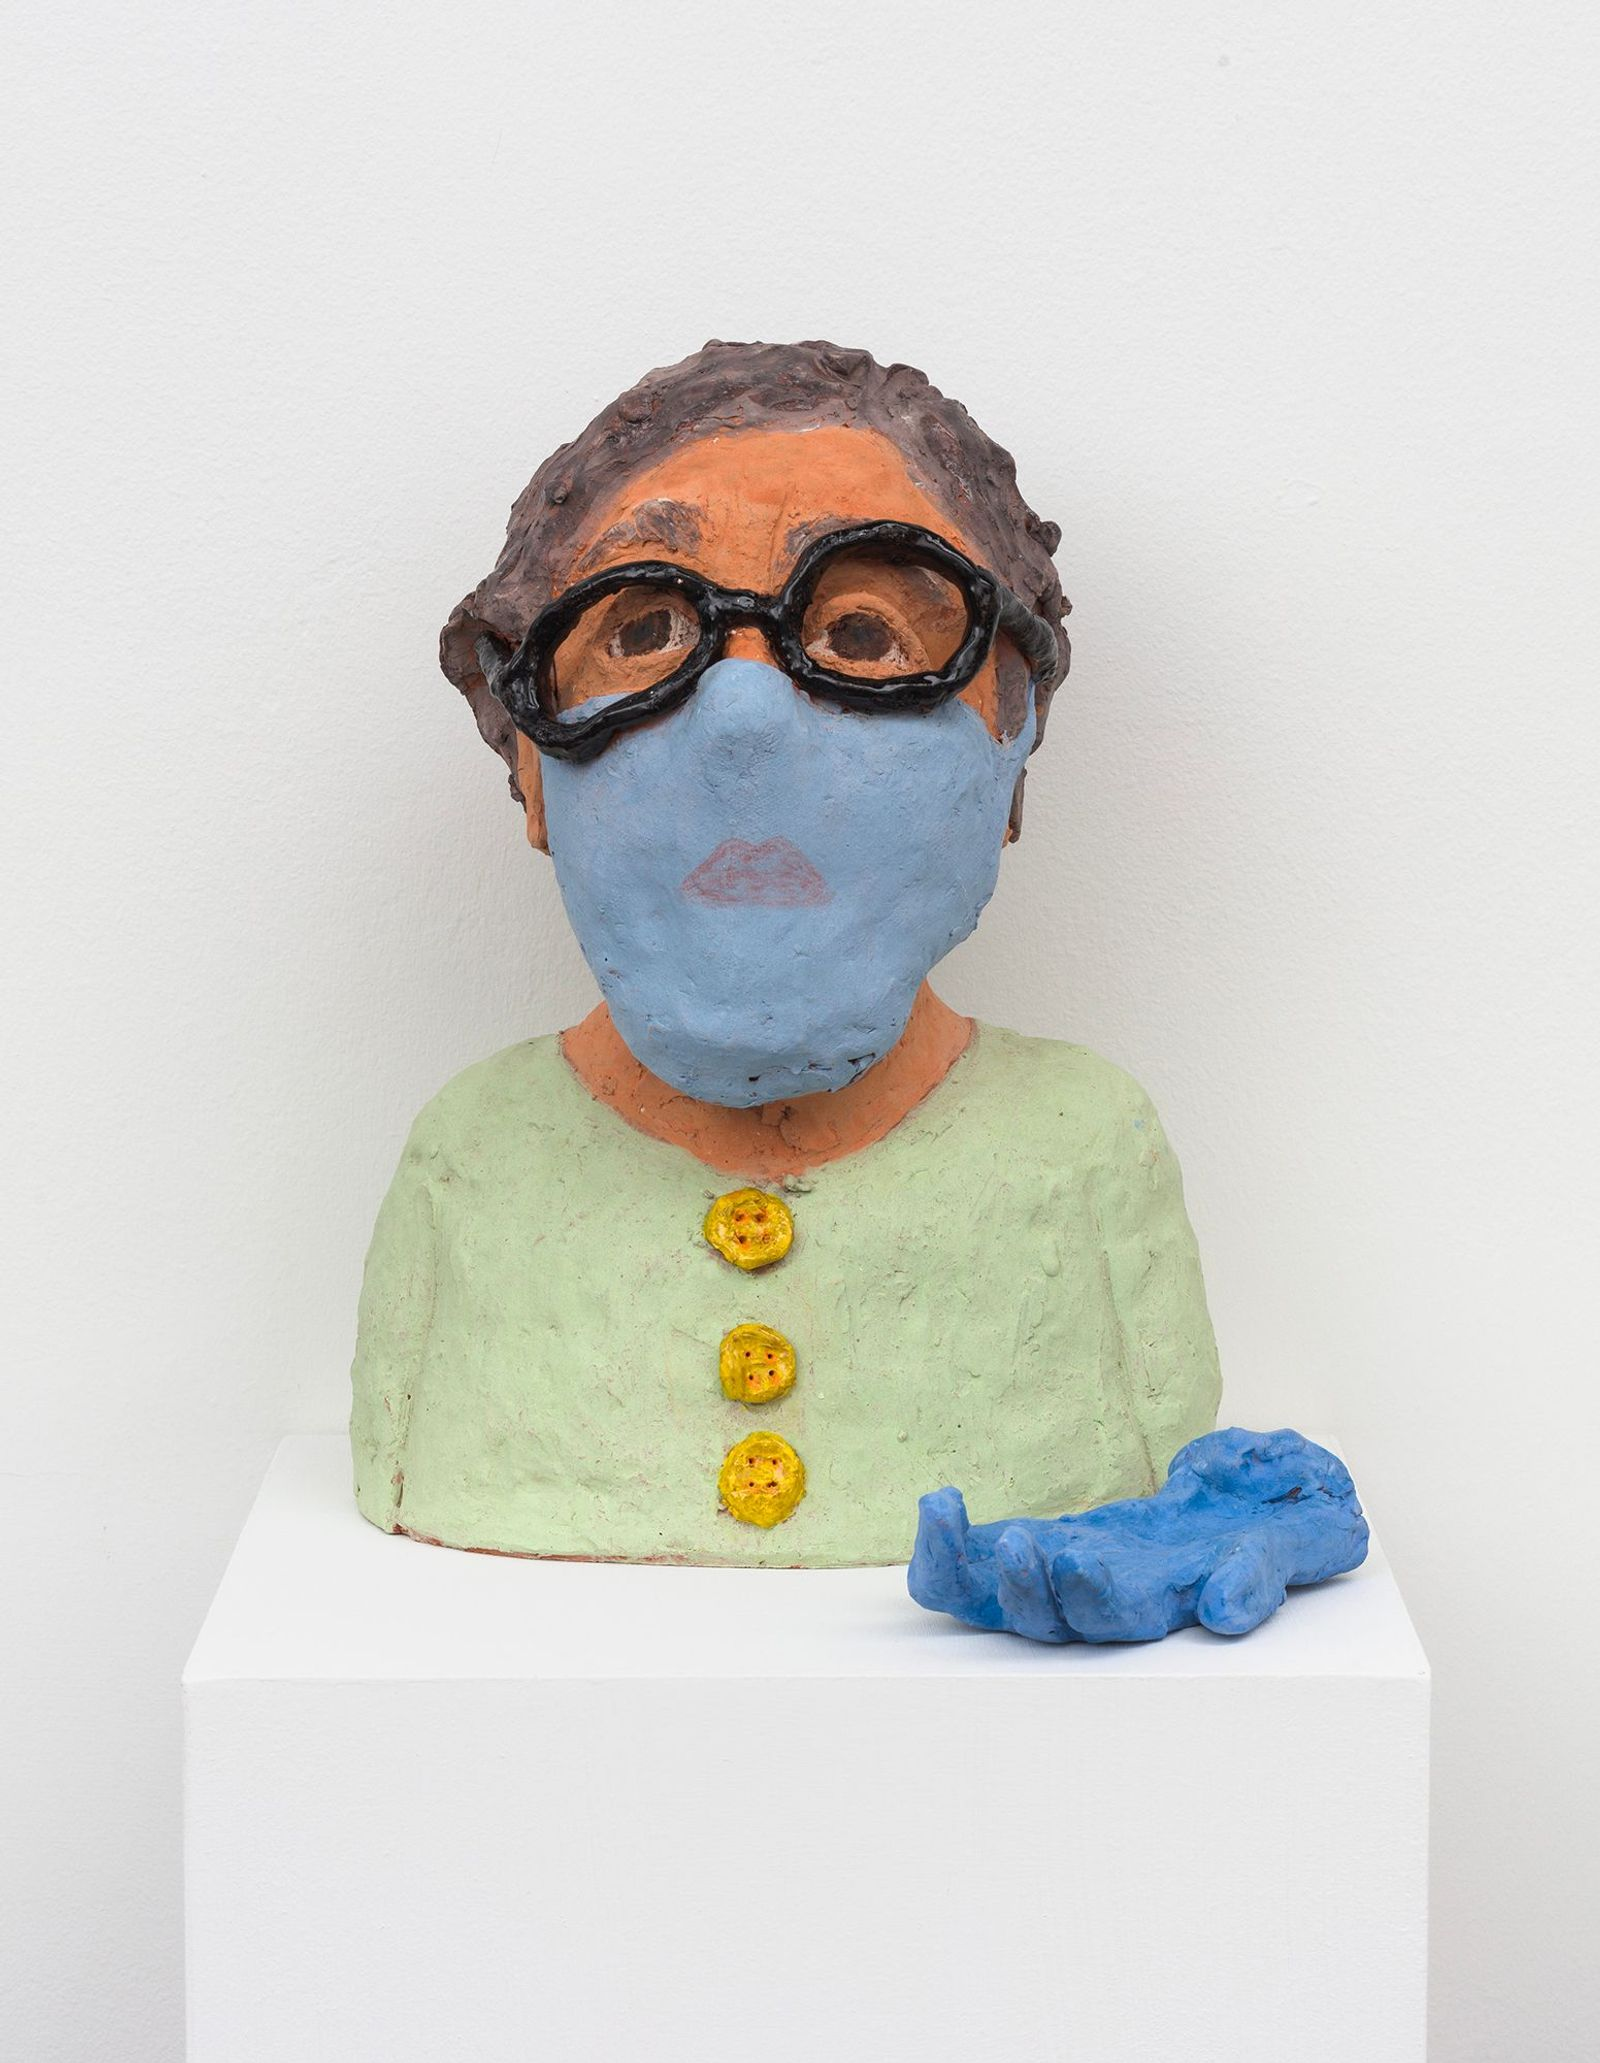 Sculpture by Sally Saul